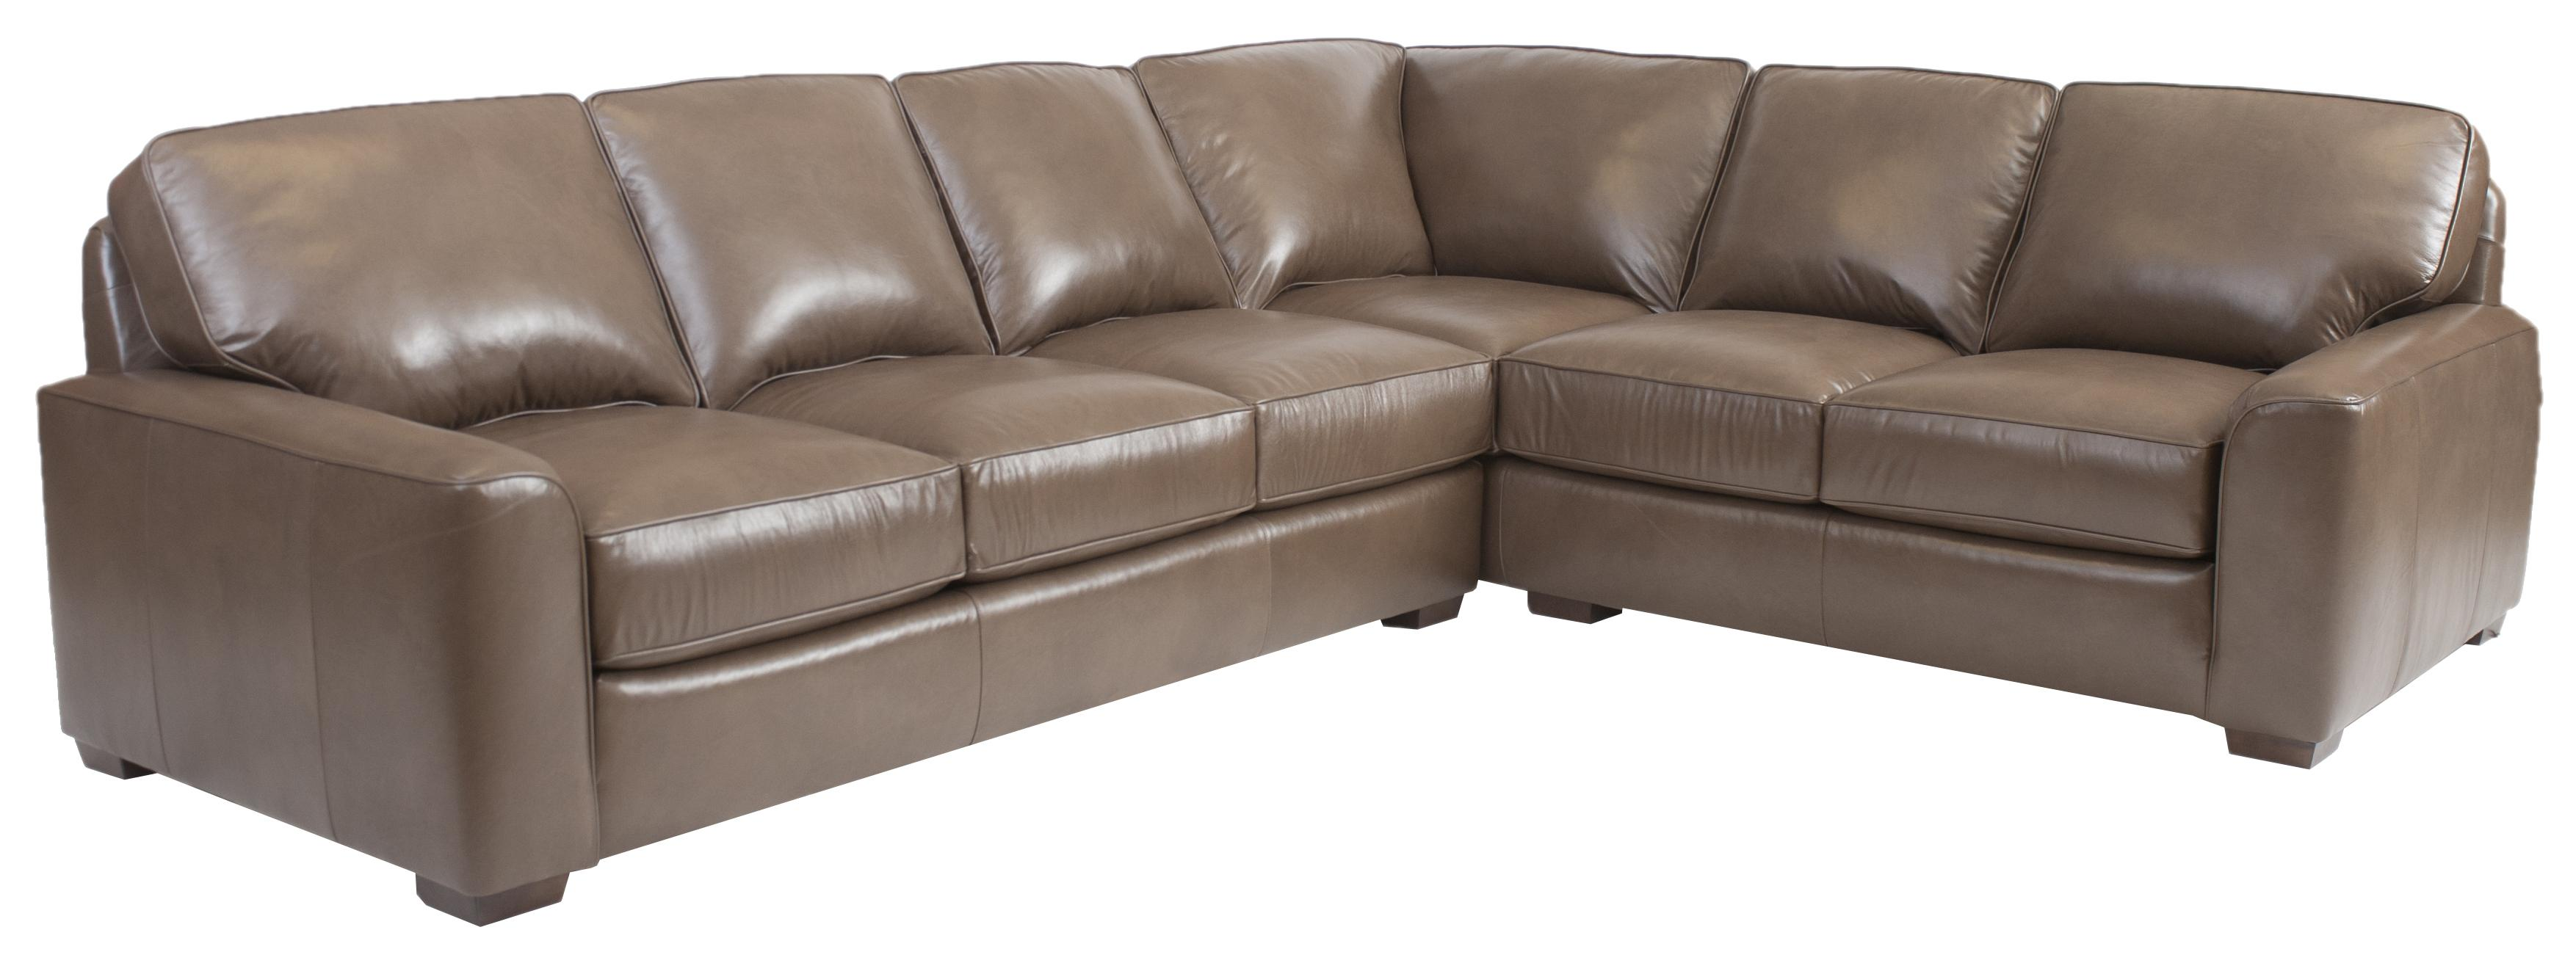 Large Corner Sectional Sofa